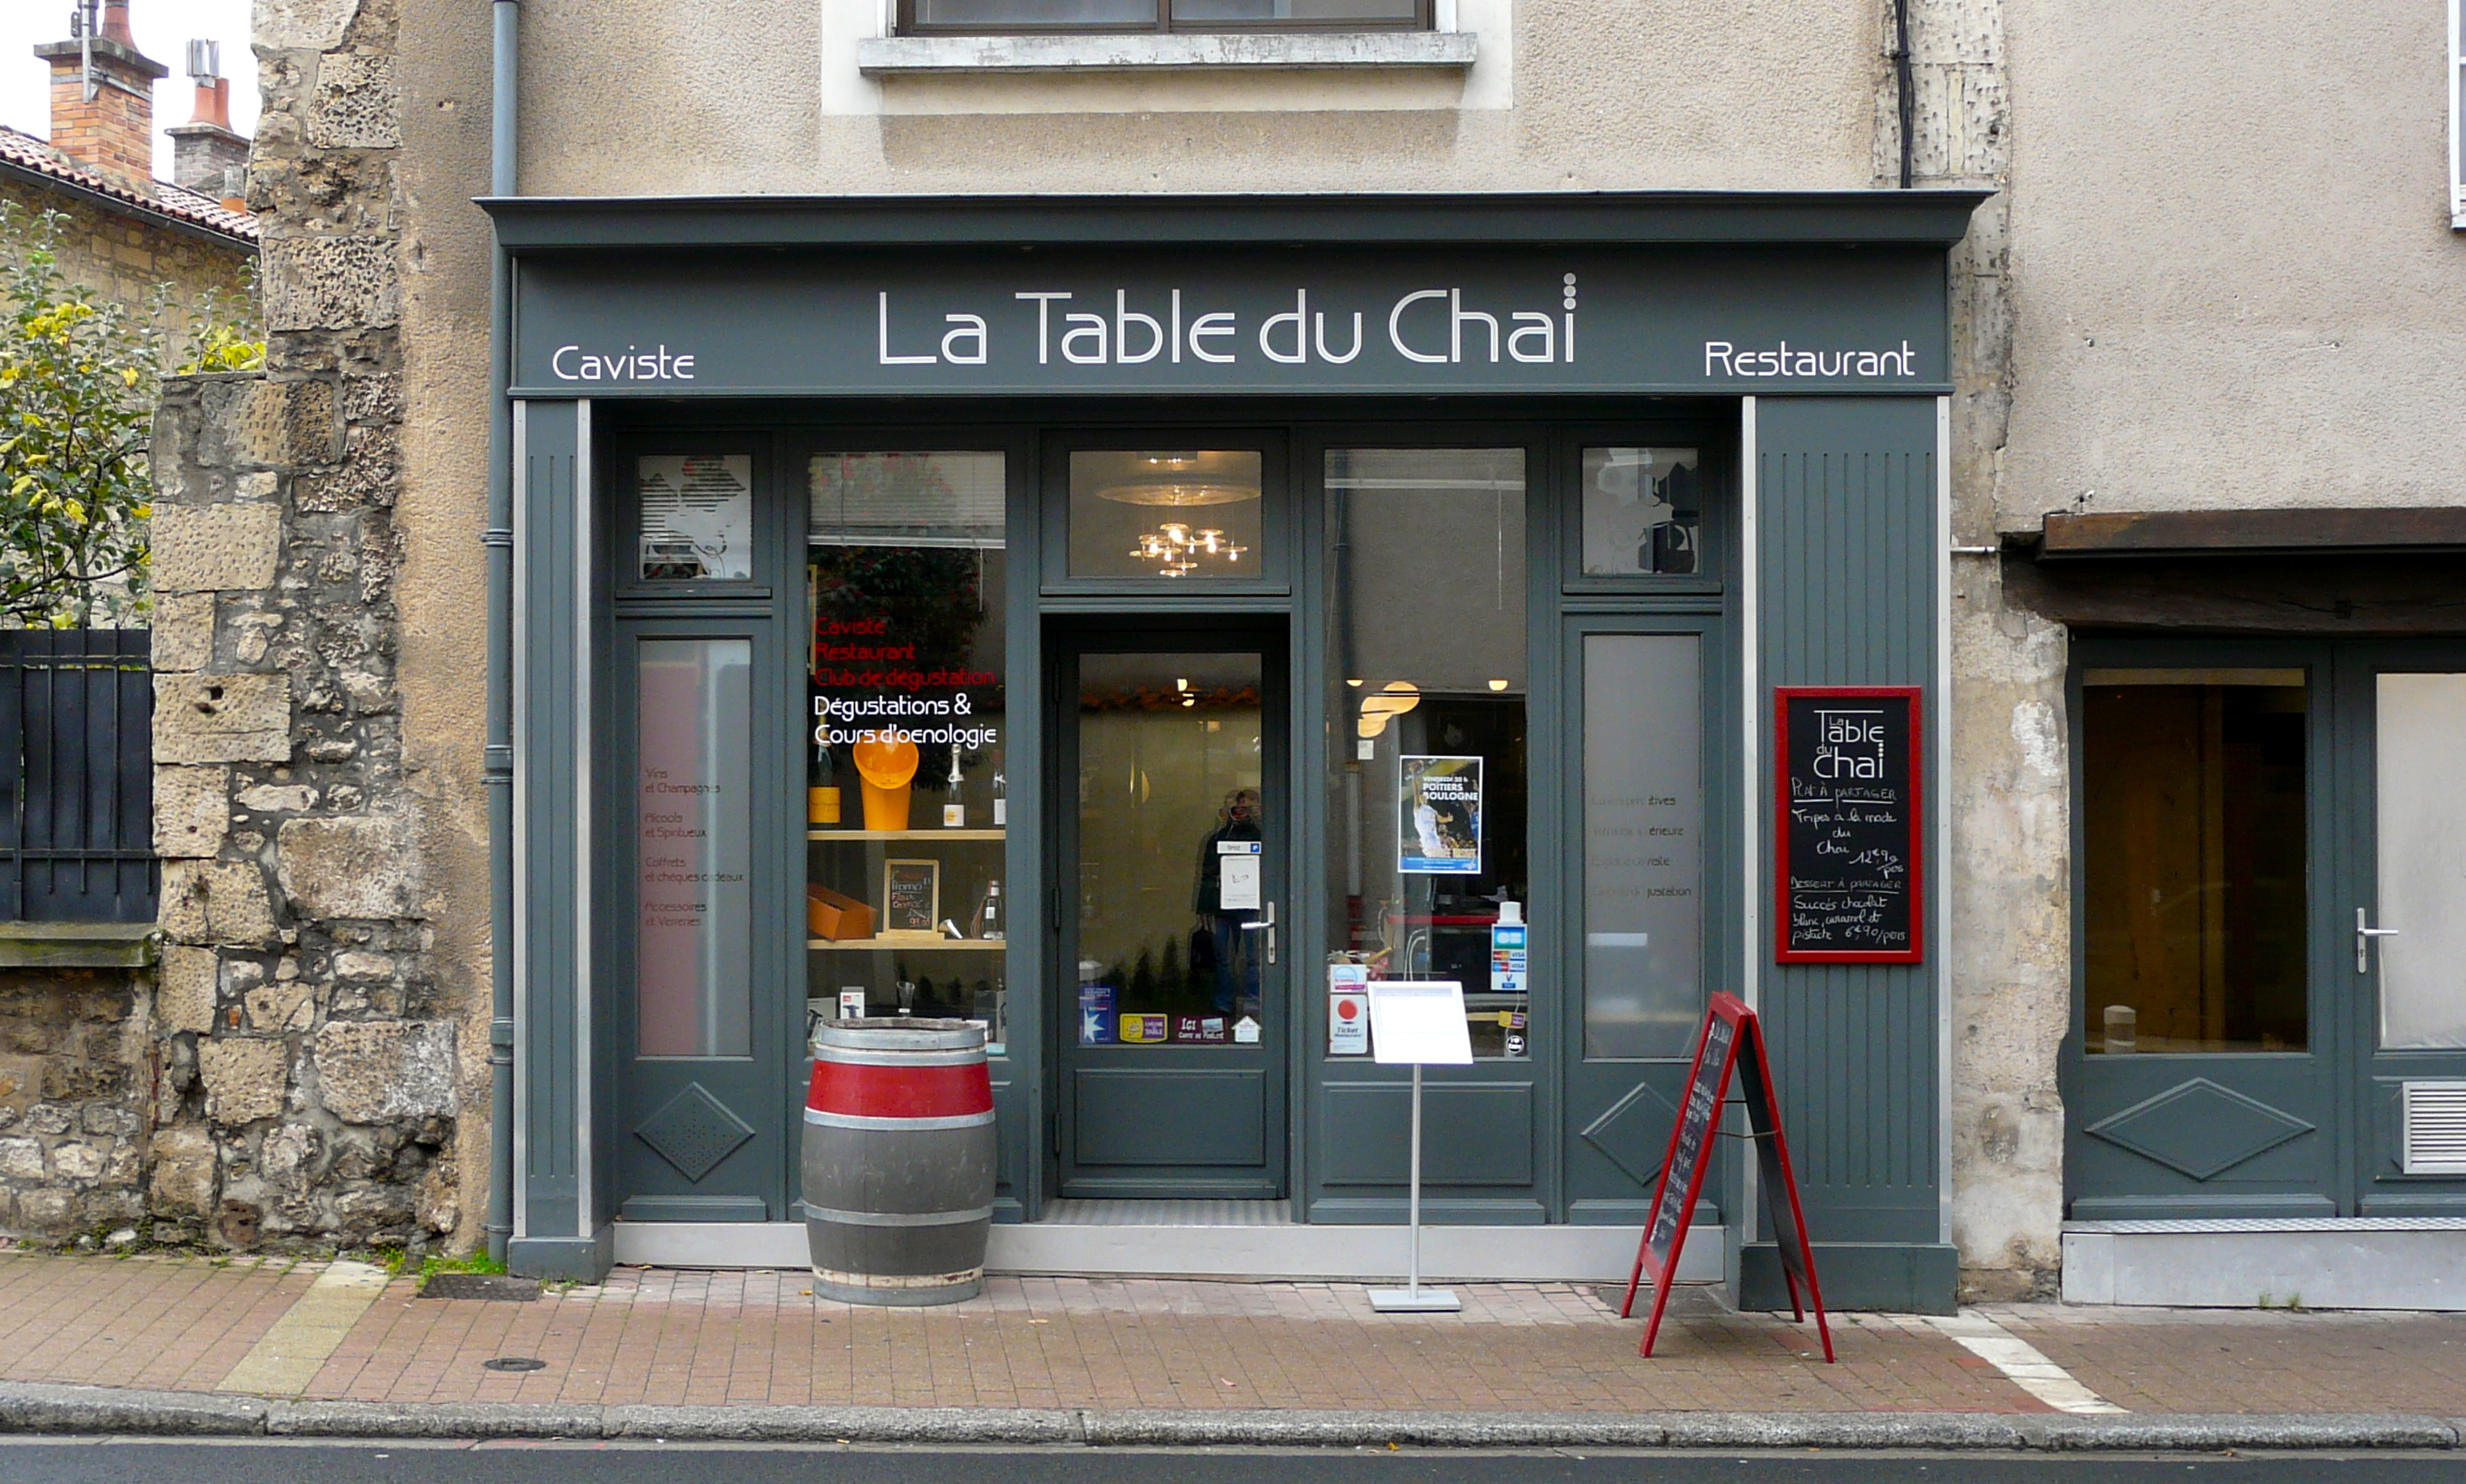 Restaurant le 16 carnot poitiers for La table parisienne poitiers